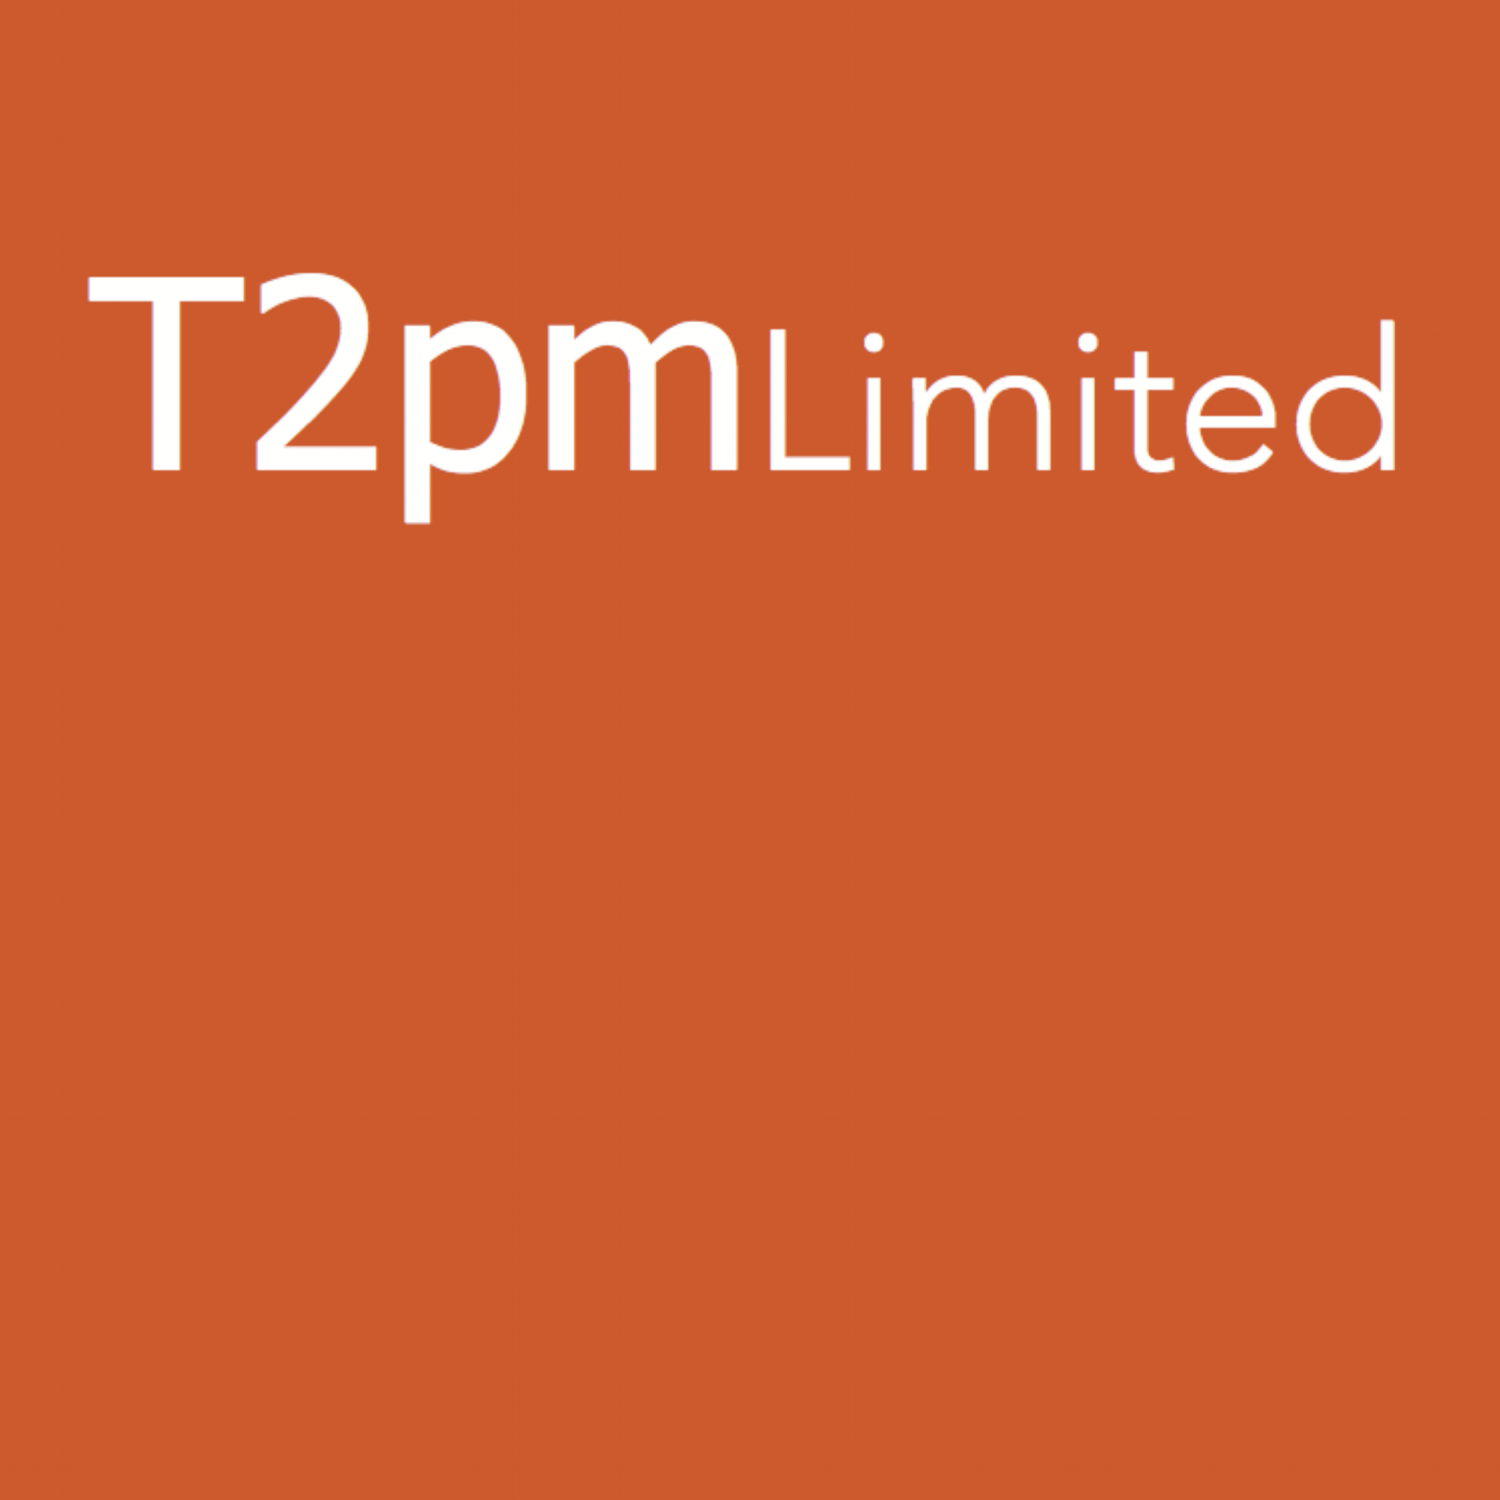 T2pm, Limited.